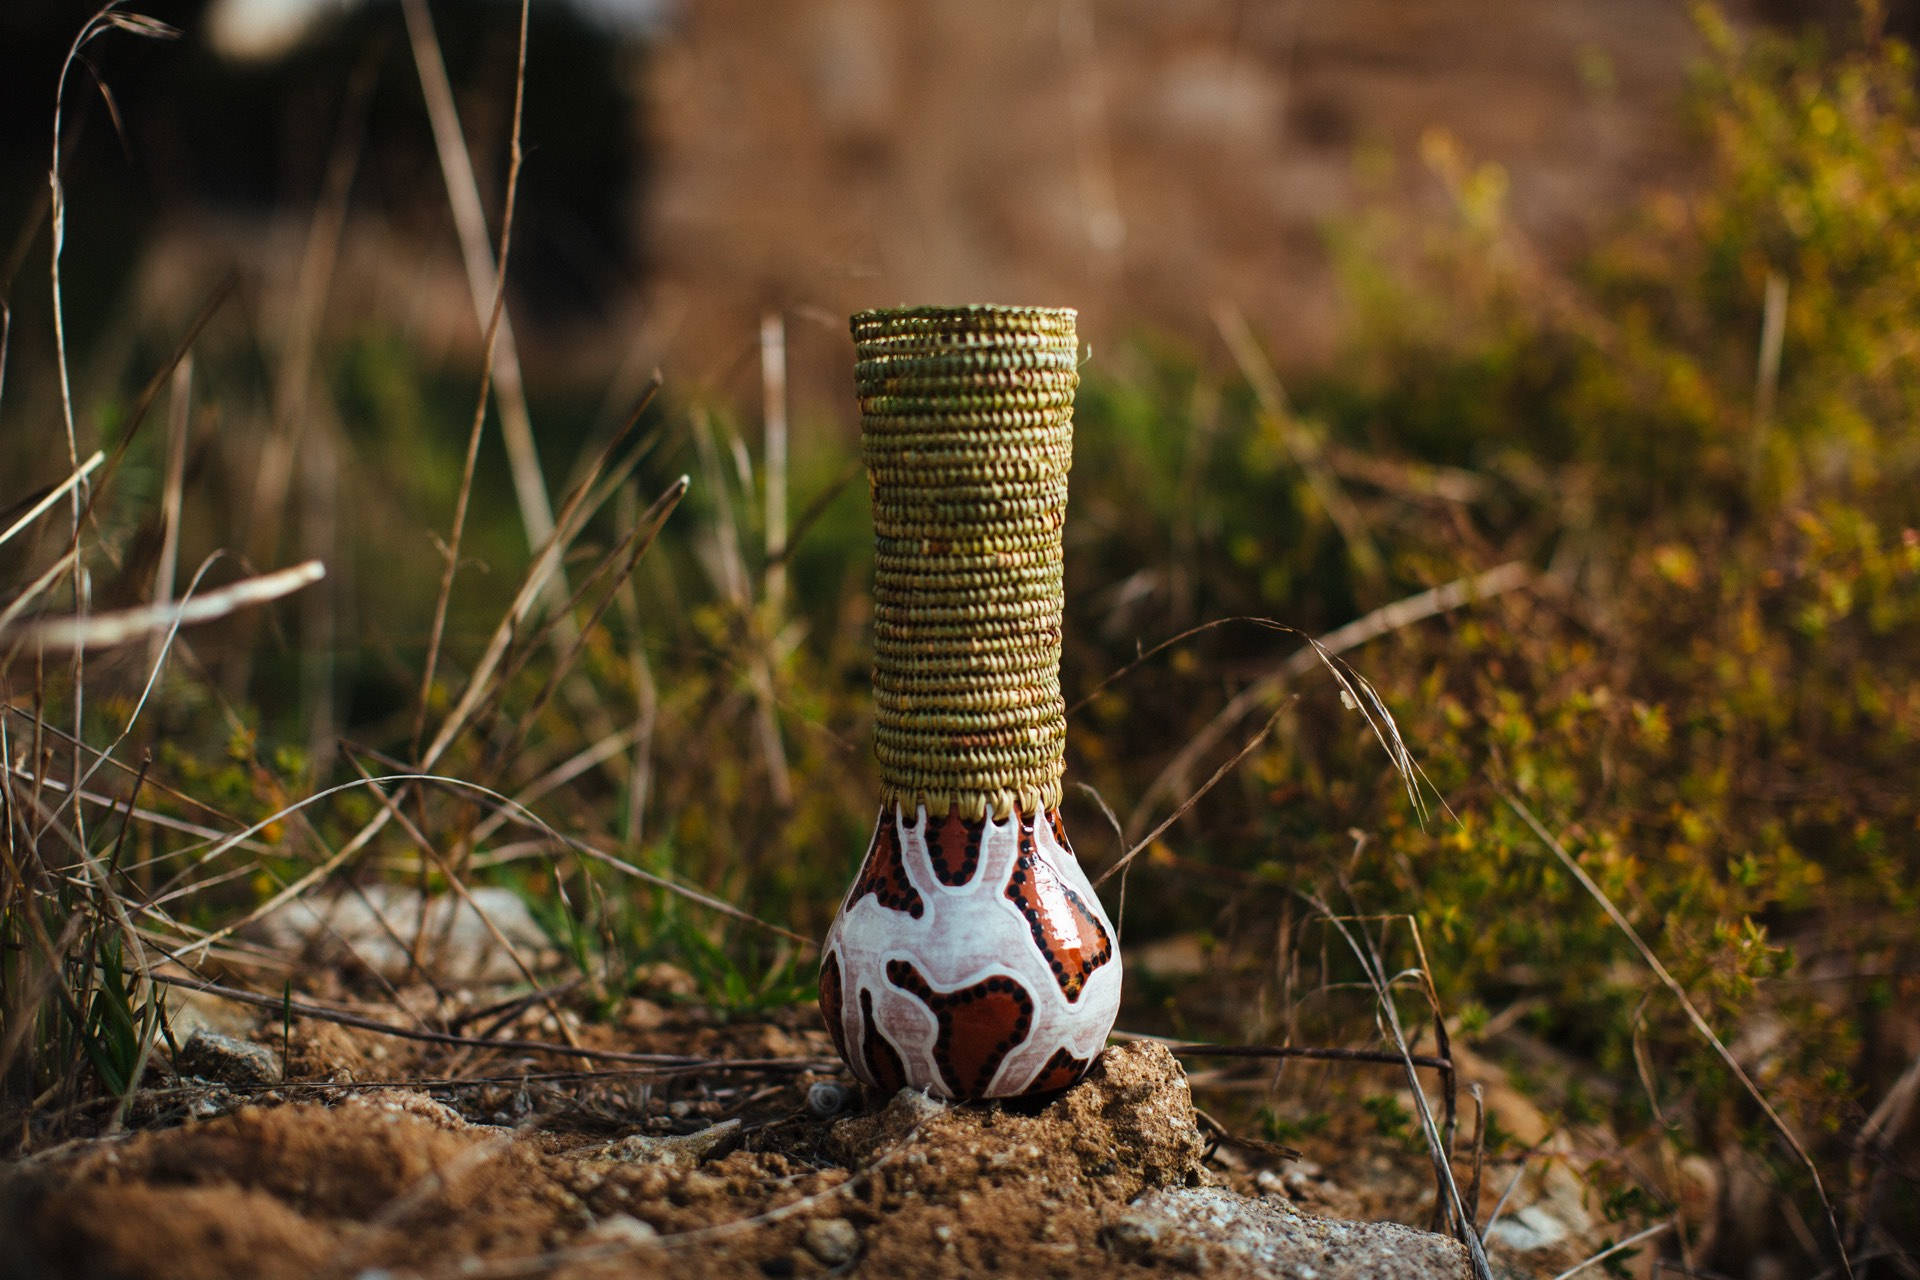 Tall vase with Ngarrindjeri weave